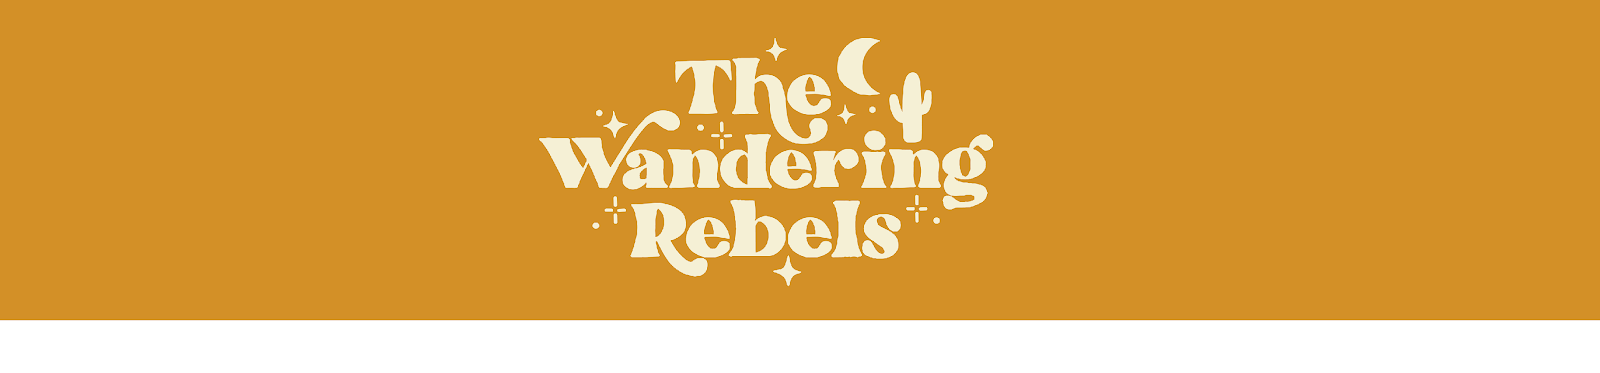 The Wandering Rebels